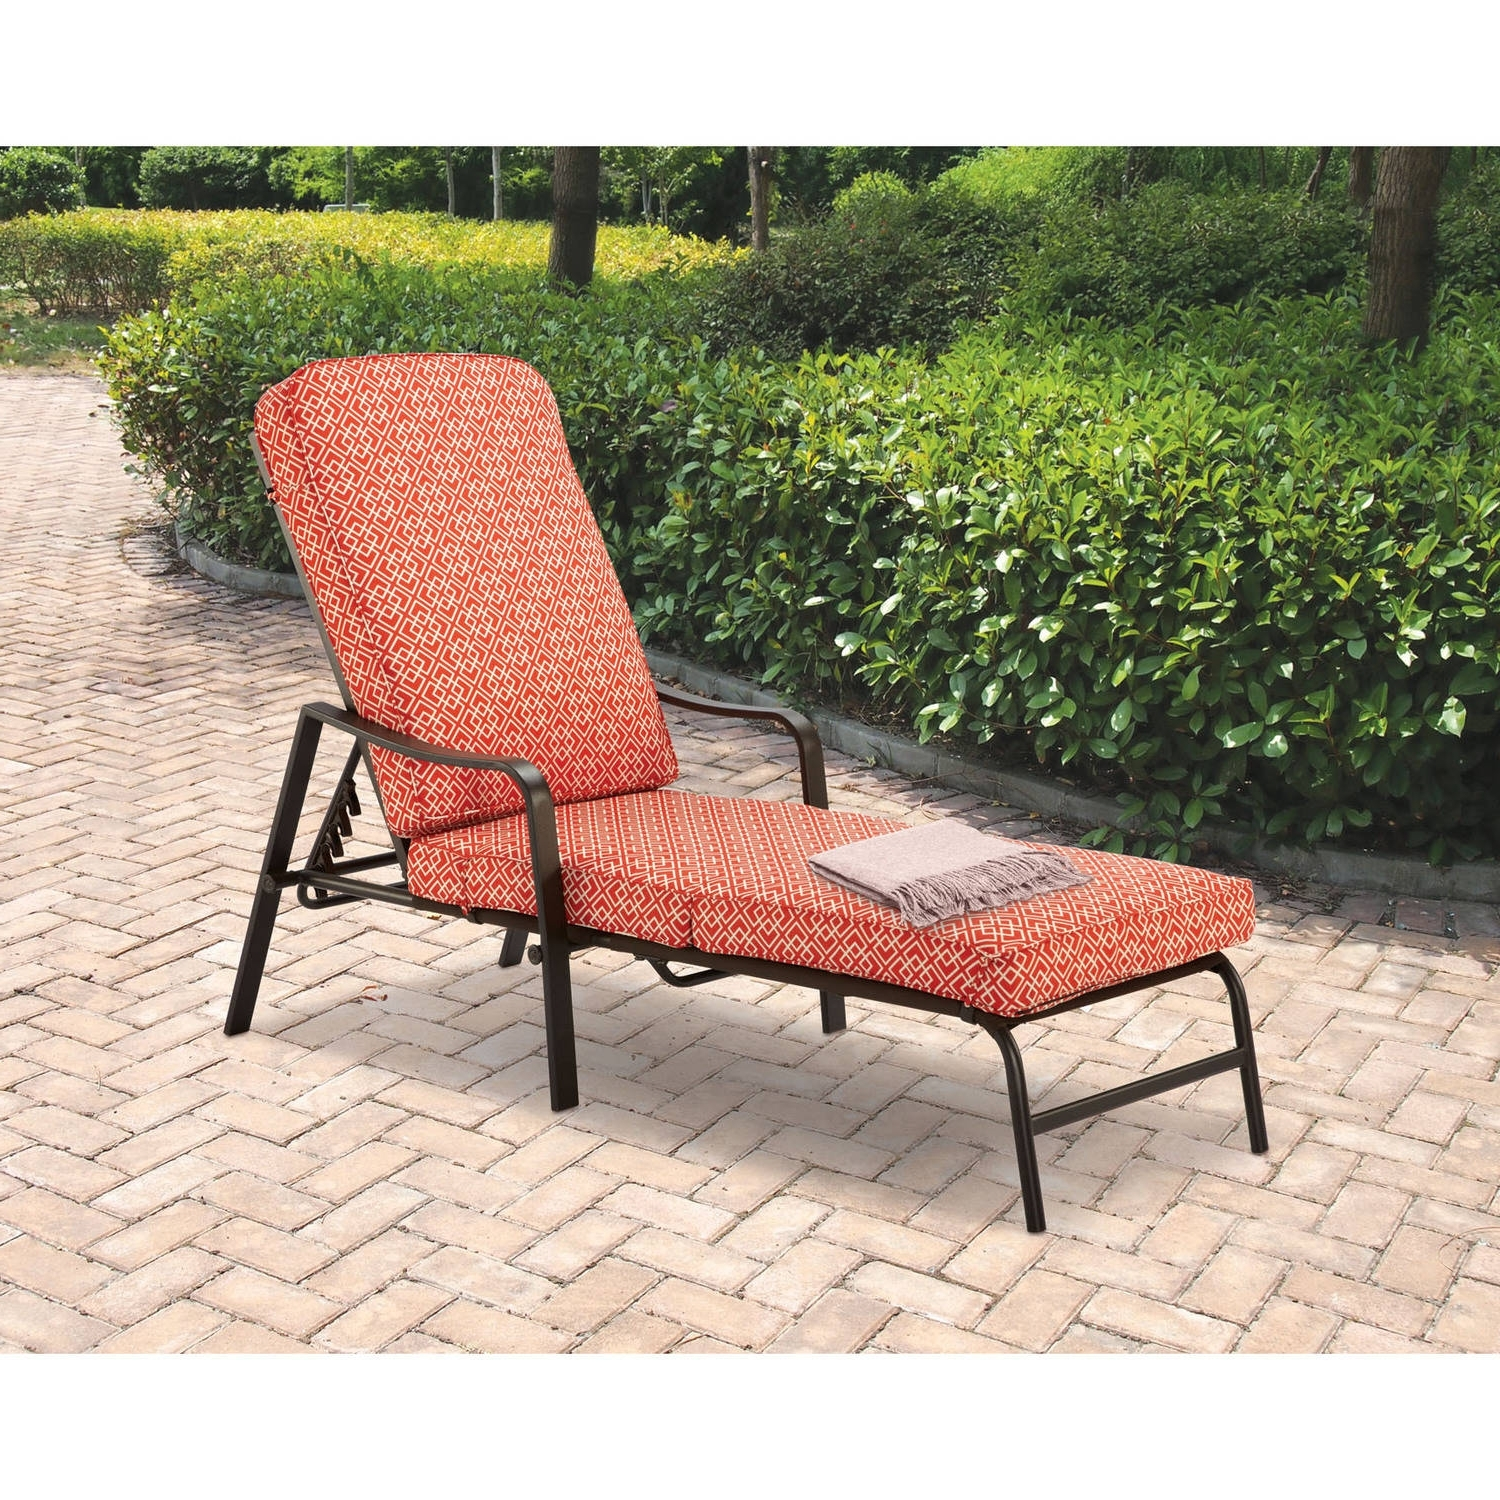 Mainstays Outdoor Chaise Lounge, Orange Geo Pattern – Walmart Pertaining To Current Outdoor Cushions For Chaise Lounge Chairs (View 4 of 15)